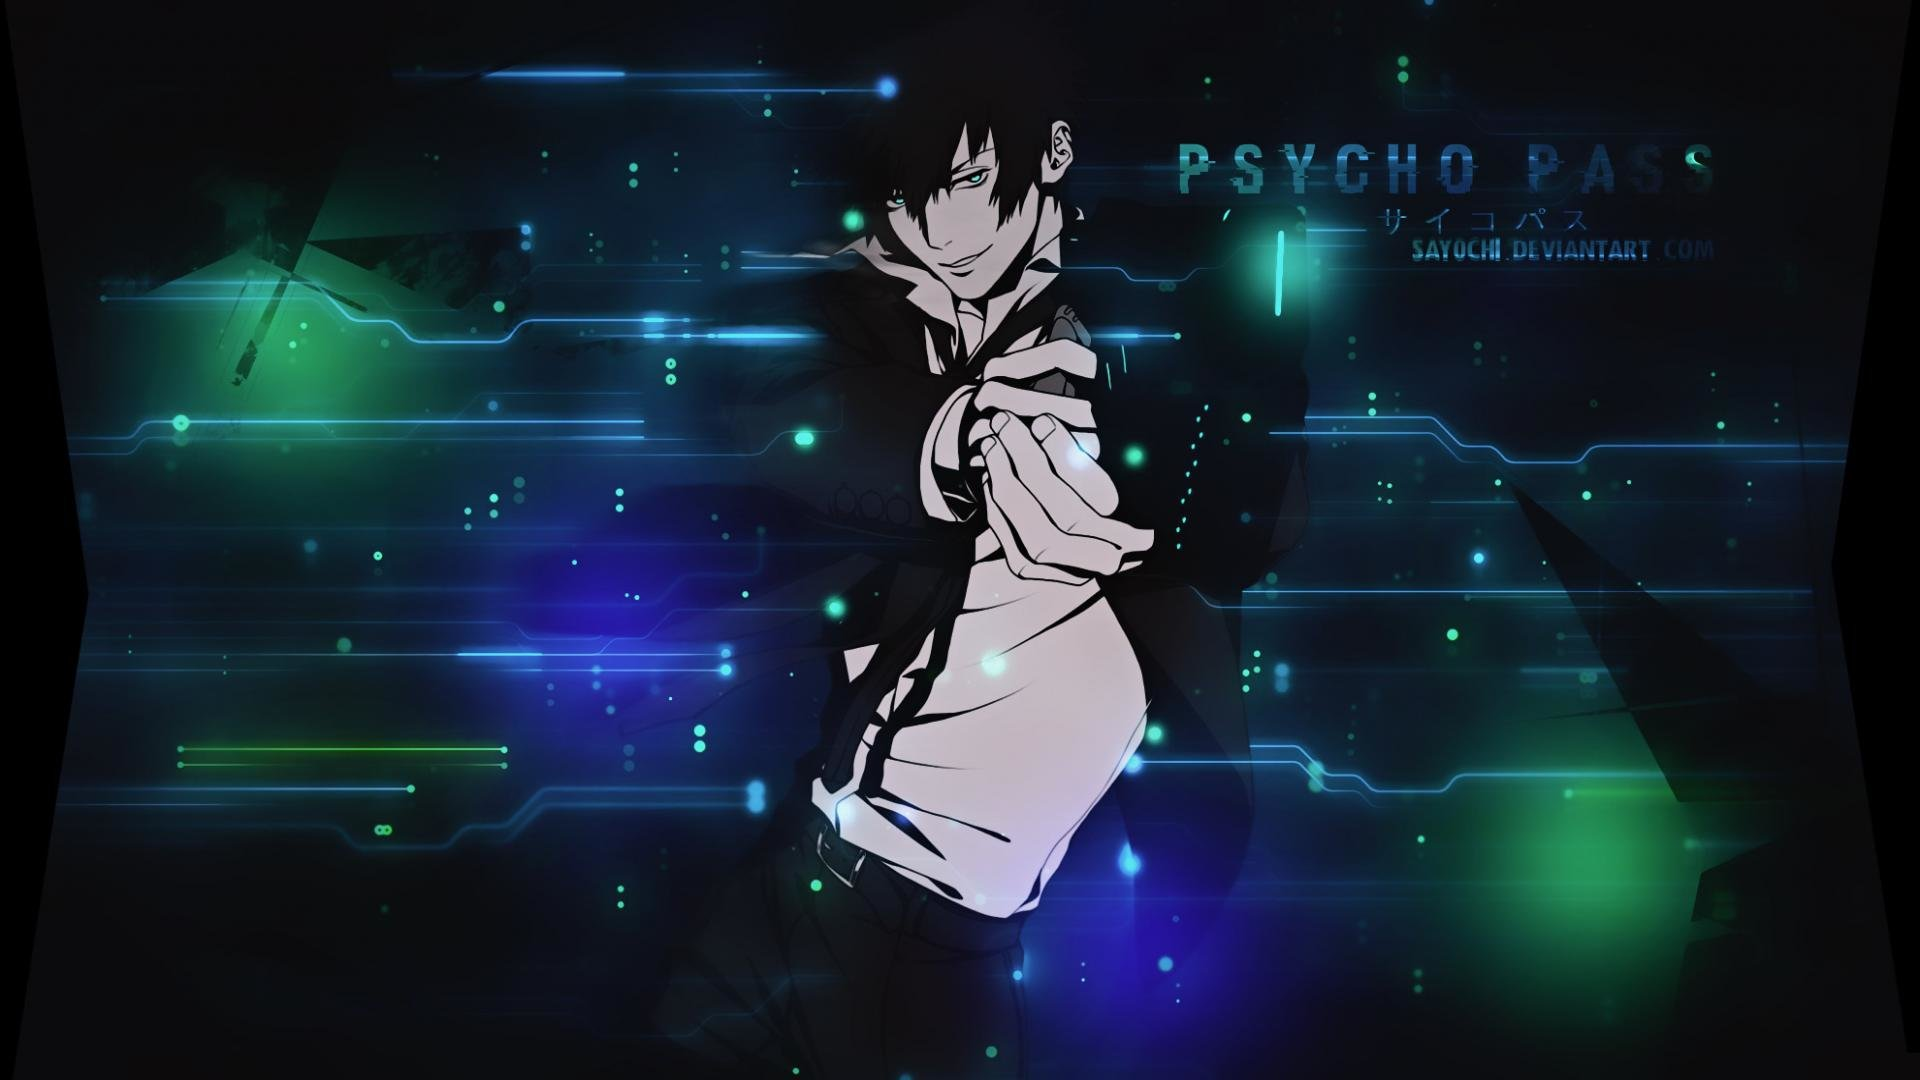 Download full hd 1920x1080 Psycho-Pass computer background ID:451793 for free